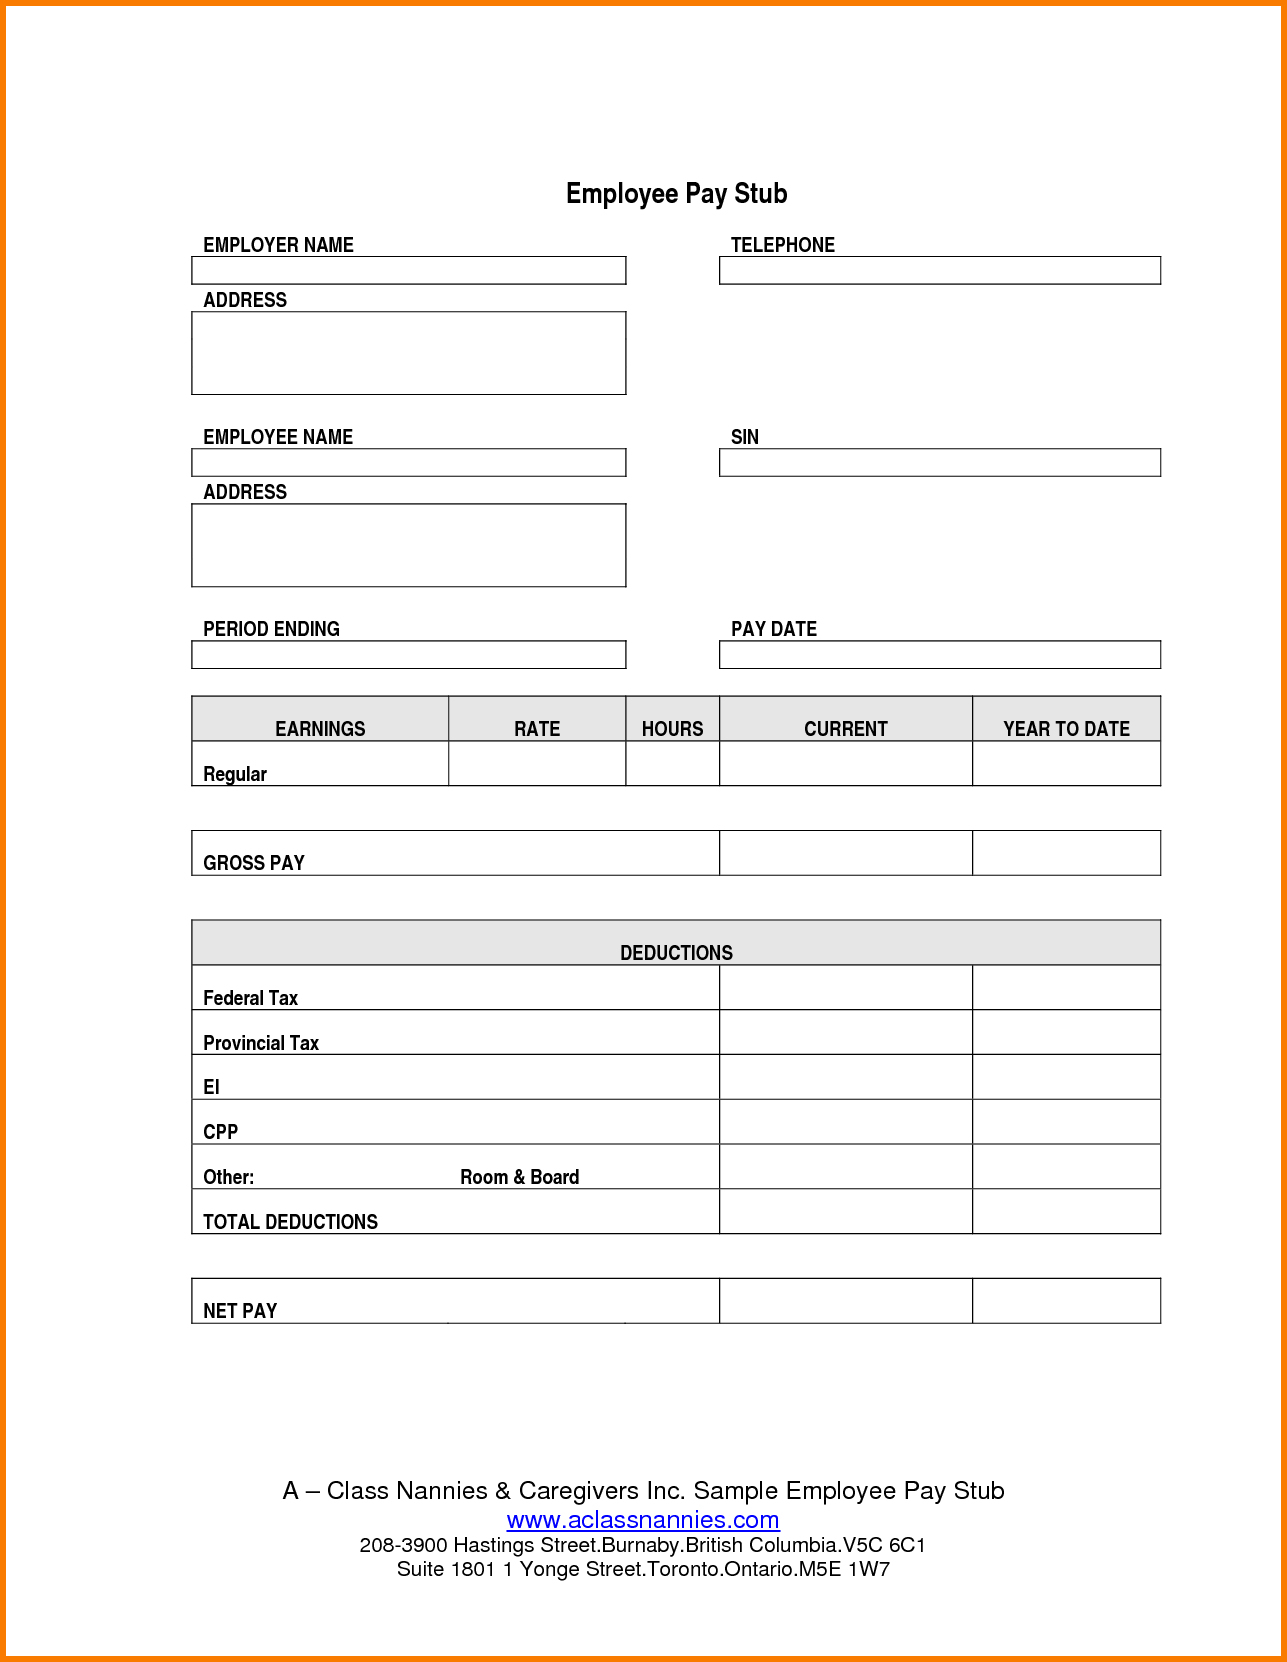 Free Blank Pay Stub Template Downloads With Printable Payroll Check - Free Printable Paycheck Stubs